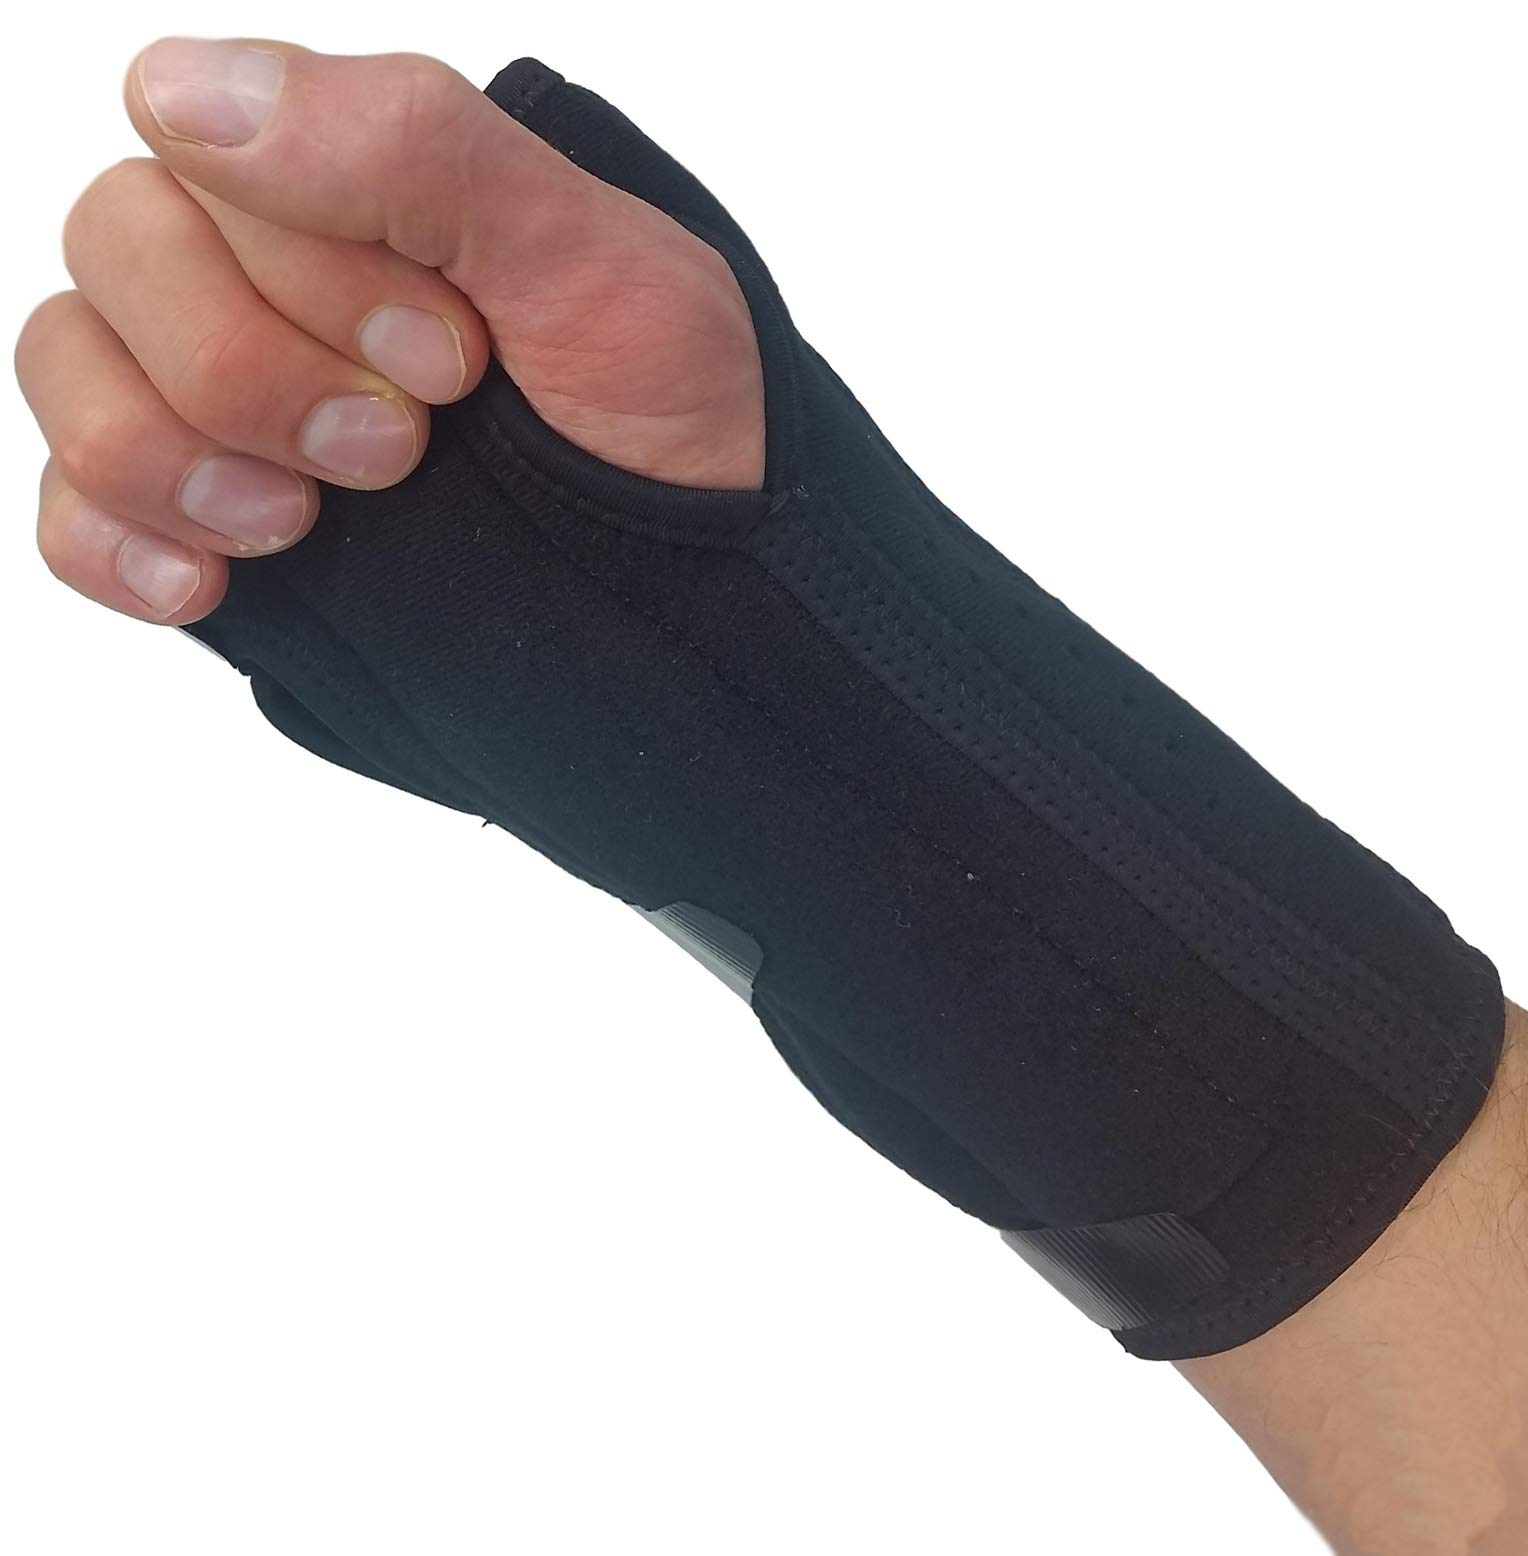 Carpal Tunnel Wrist Brace Night Support - New Padded Palm Design. Breathable Wrist Splint Stabilizer Hand Brace for Carpal Tunnel Syndrome Pain Relief Inner Compression Sleeve for Wrist Tendonitis